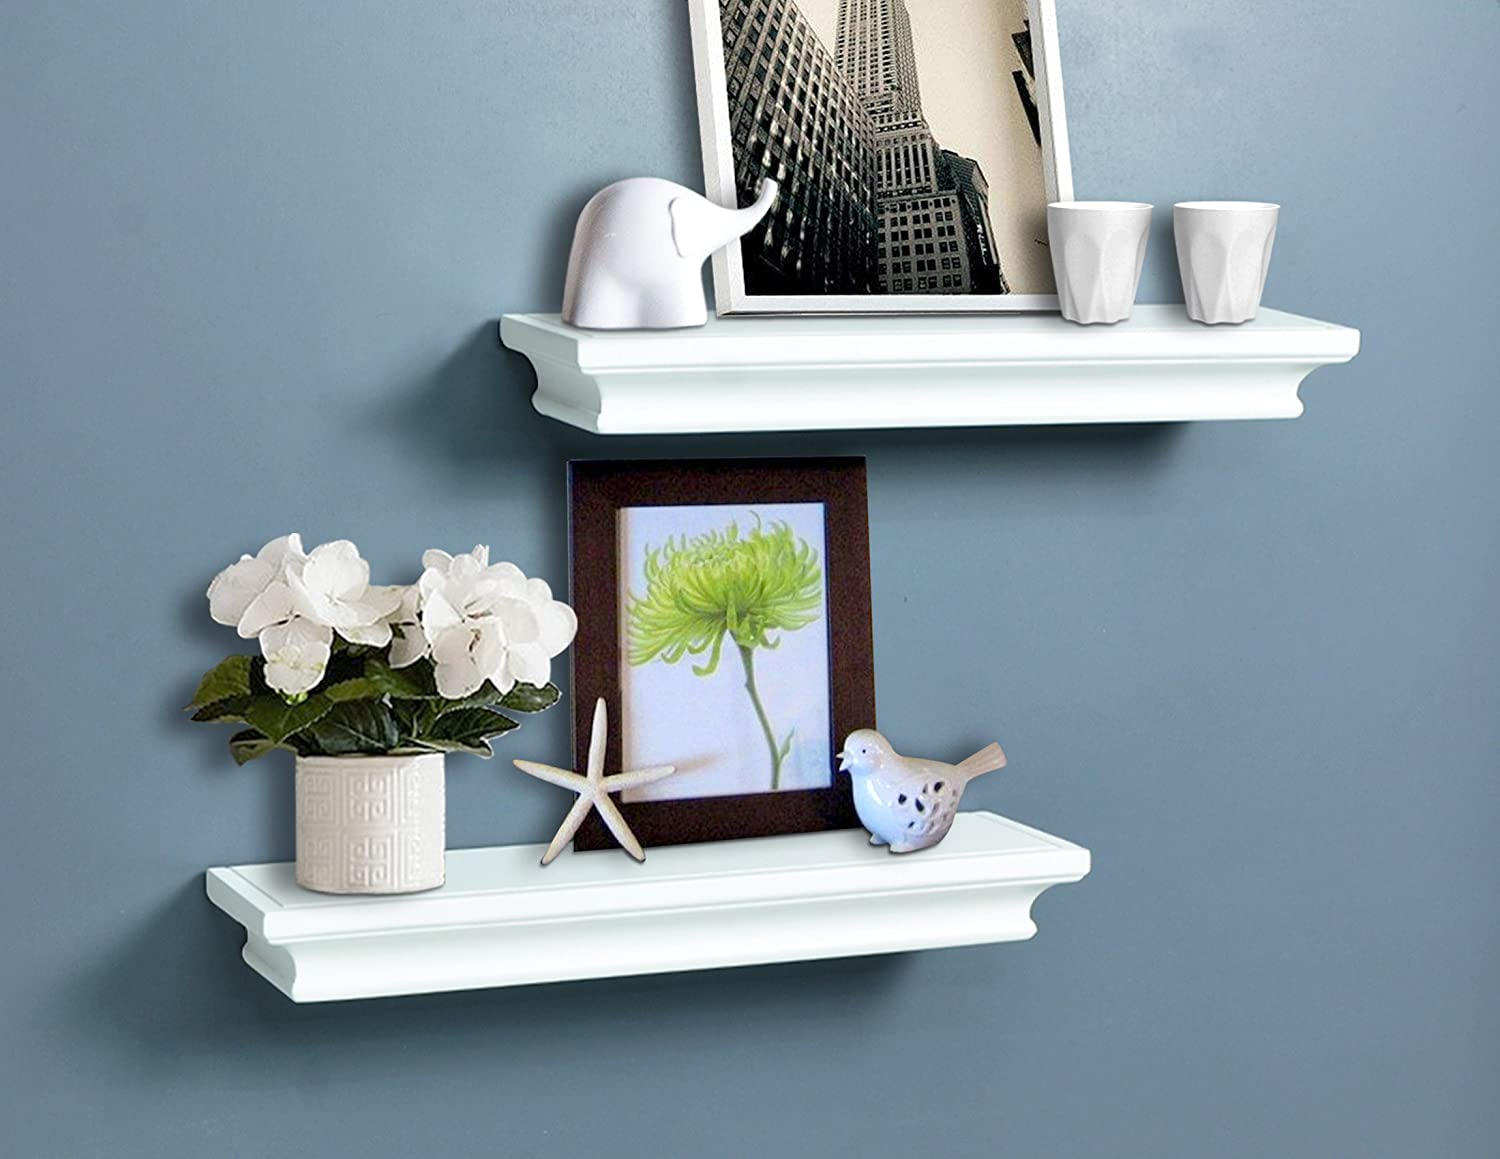 "AHDECOR White Floating Shelves, Ledge Wall Shelf for Home Decor with 4"" Deep, 2-Pack"